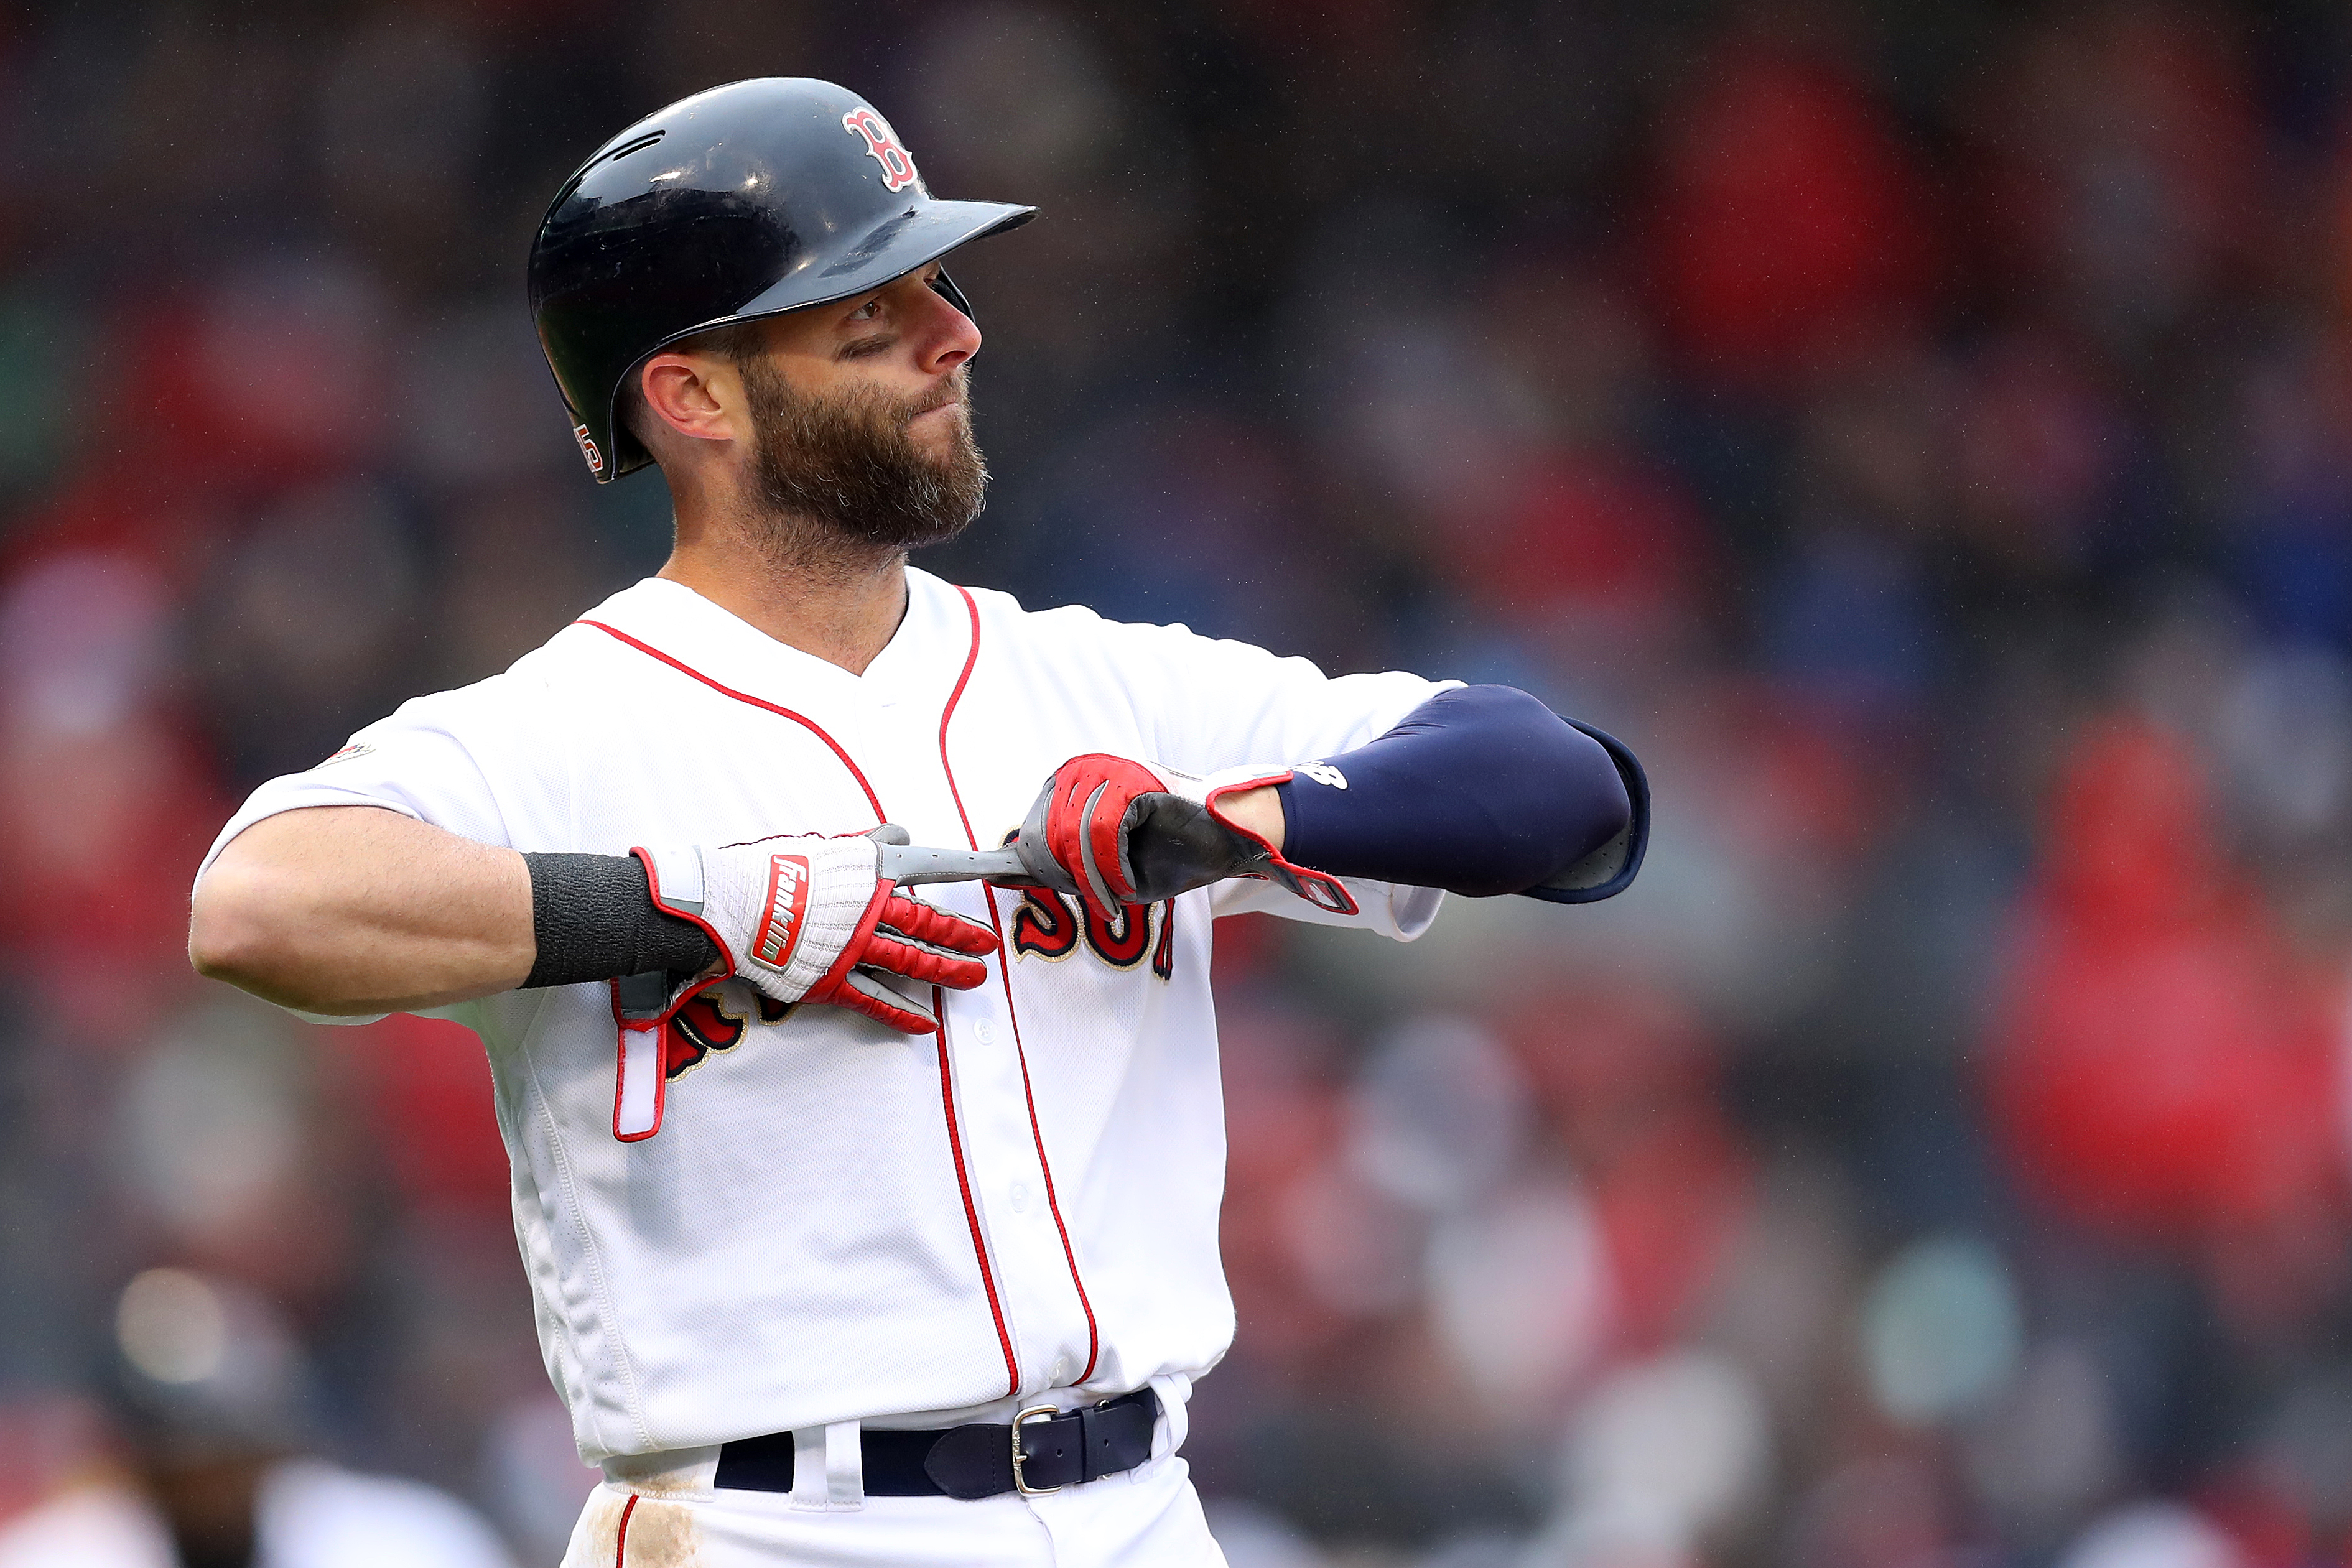 20b677281 MLB Trade Rumors and News  The end may be near for Dustin Pedroia